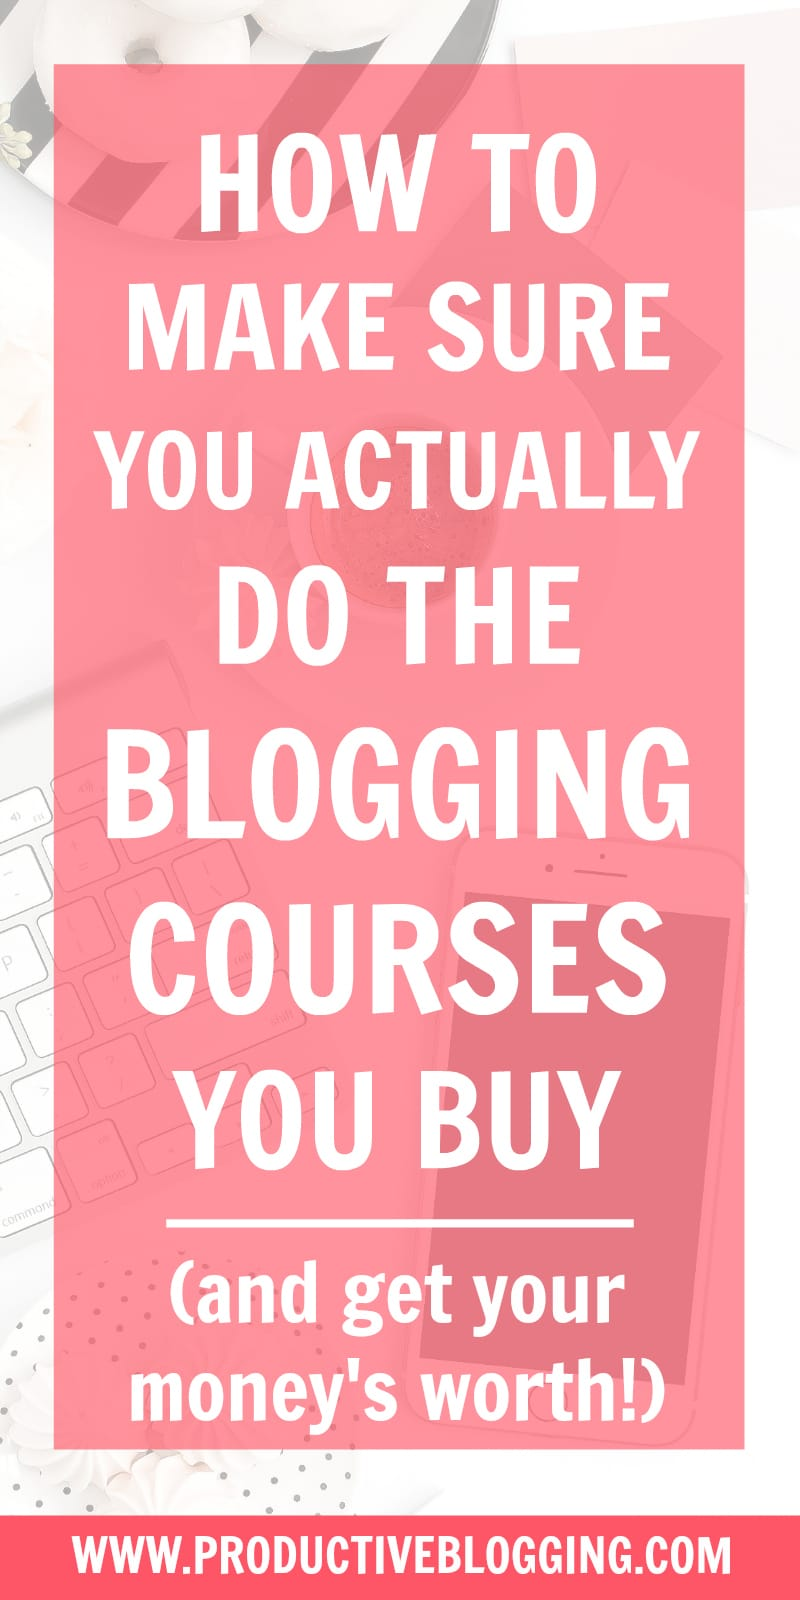 Do you buy blogging courses but never actually finish them? Maybe sometimes you don't even start them… Here's how to make sure you actually DO the blogging courses you buy (and get your money's worth!) #bloggingcourse #bloggingcourses #productivity #productivitytips #productivityhabits #productivityhacks #todolist #timemanagement #efficiency #goals #blogginggoals #blog #blogging #bloggers #bloggingtips #organisedblogger #organizedblogging #productiveblogging #blogsmarternotharder